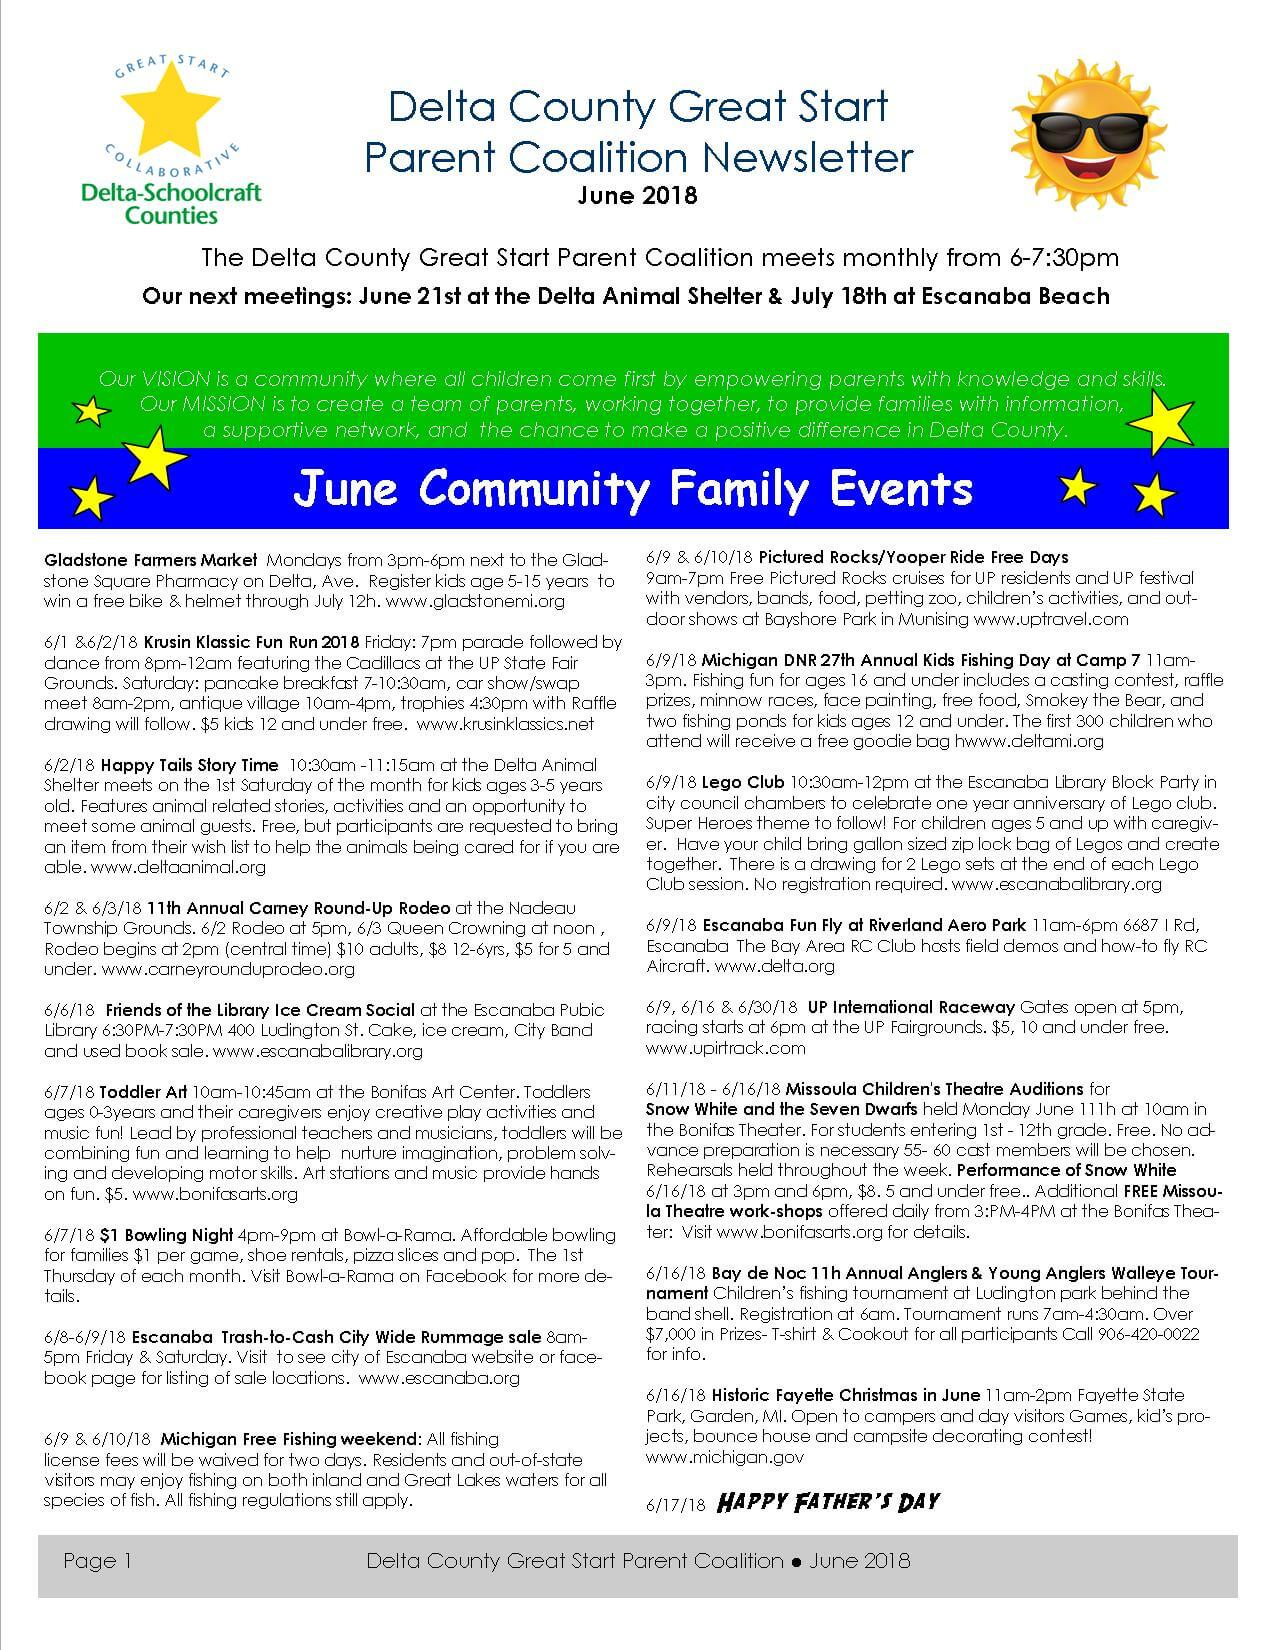 PG 1of 4 June 2018 delta county newsletter see .pdf for text